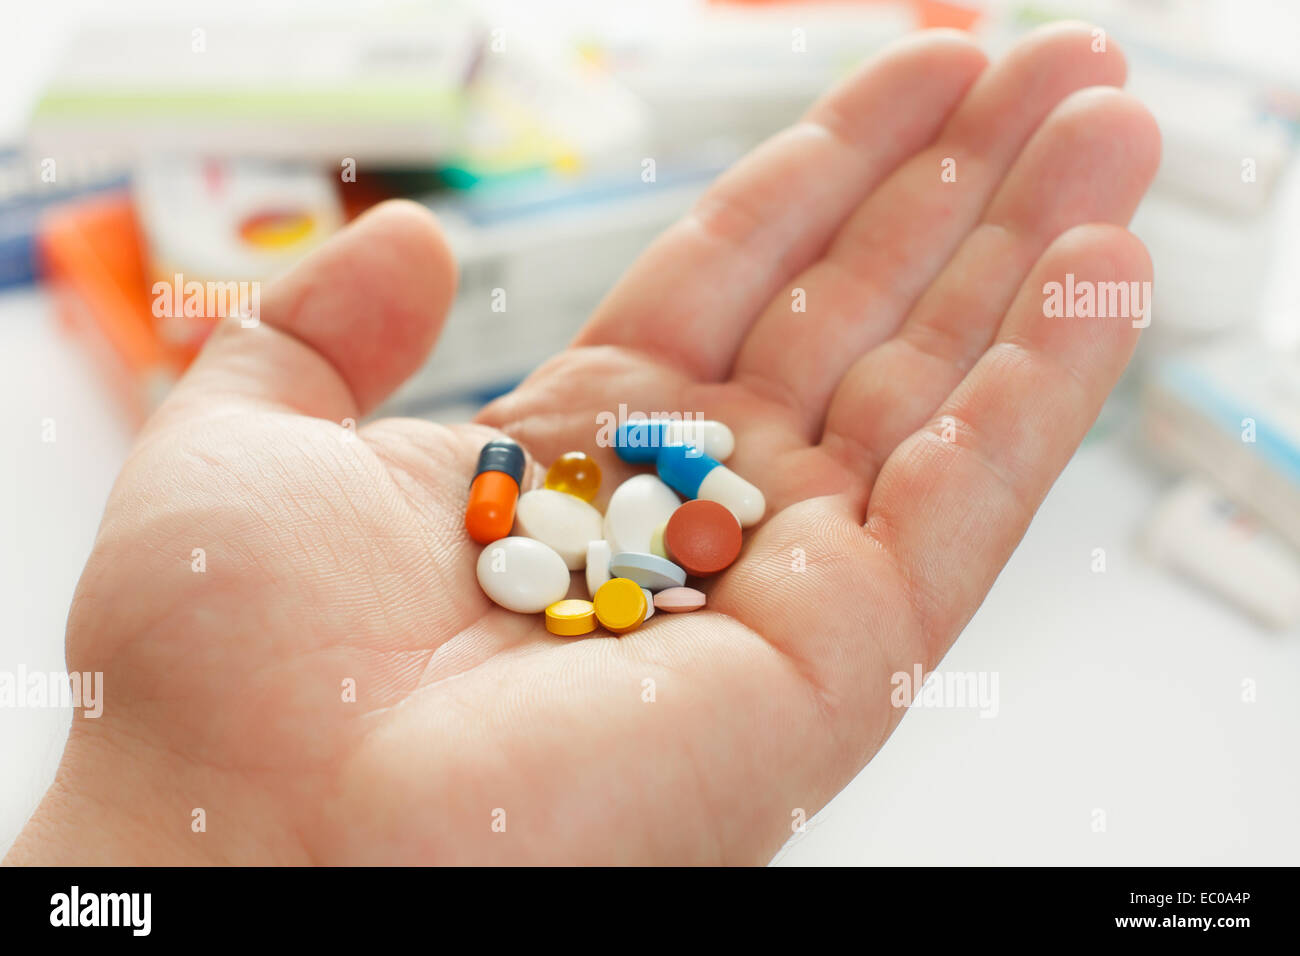 Man's hand hold many medicine, boxes of medicines in the background - Stock Image